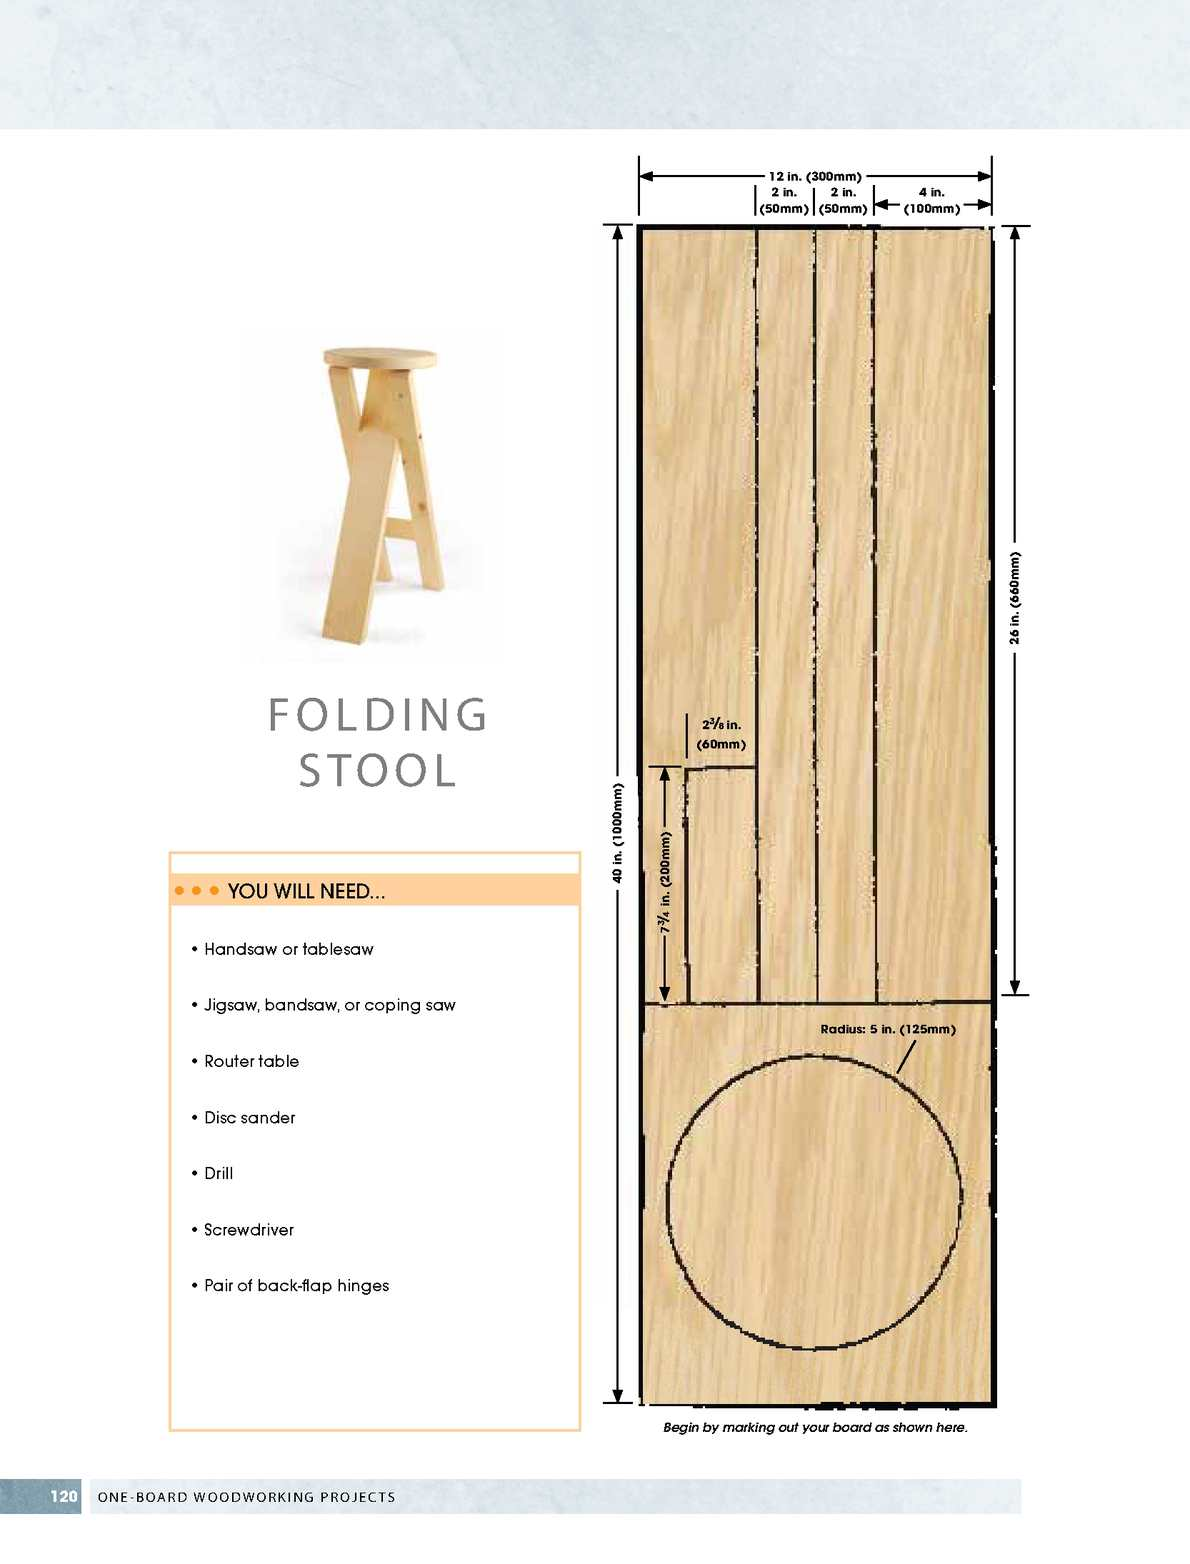 071435 One Board Woodworking Projects Preview Calameo